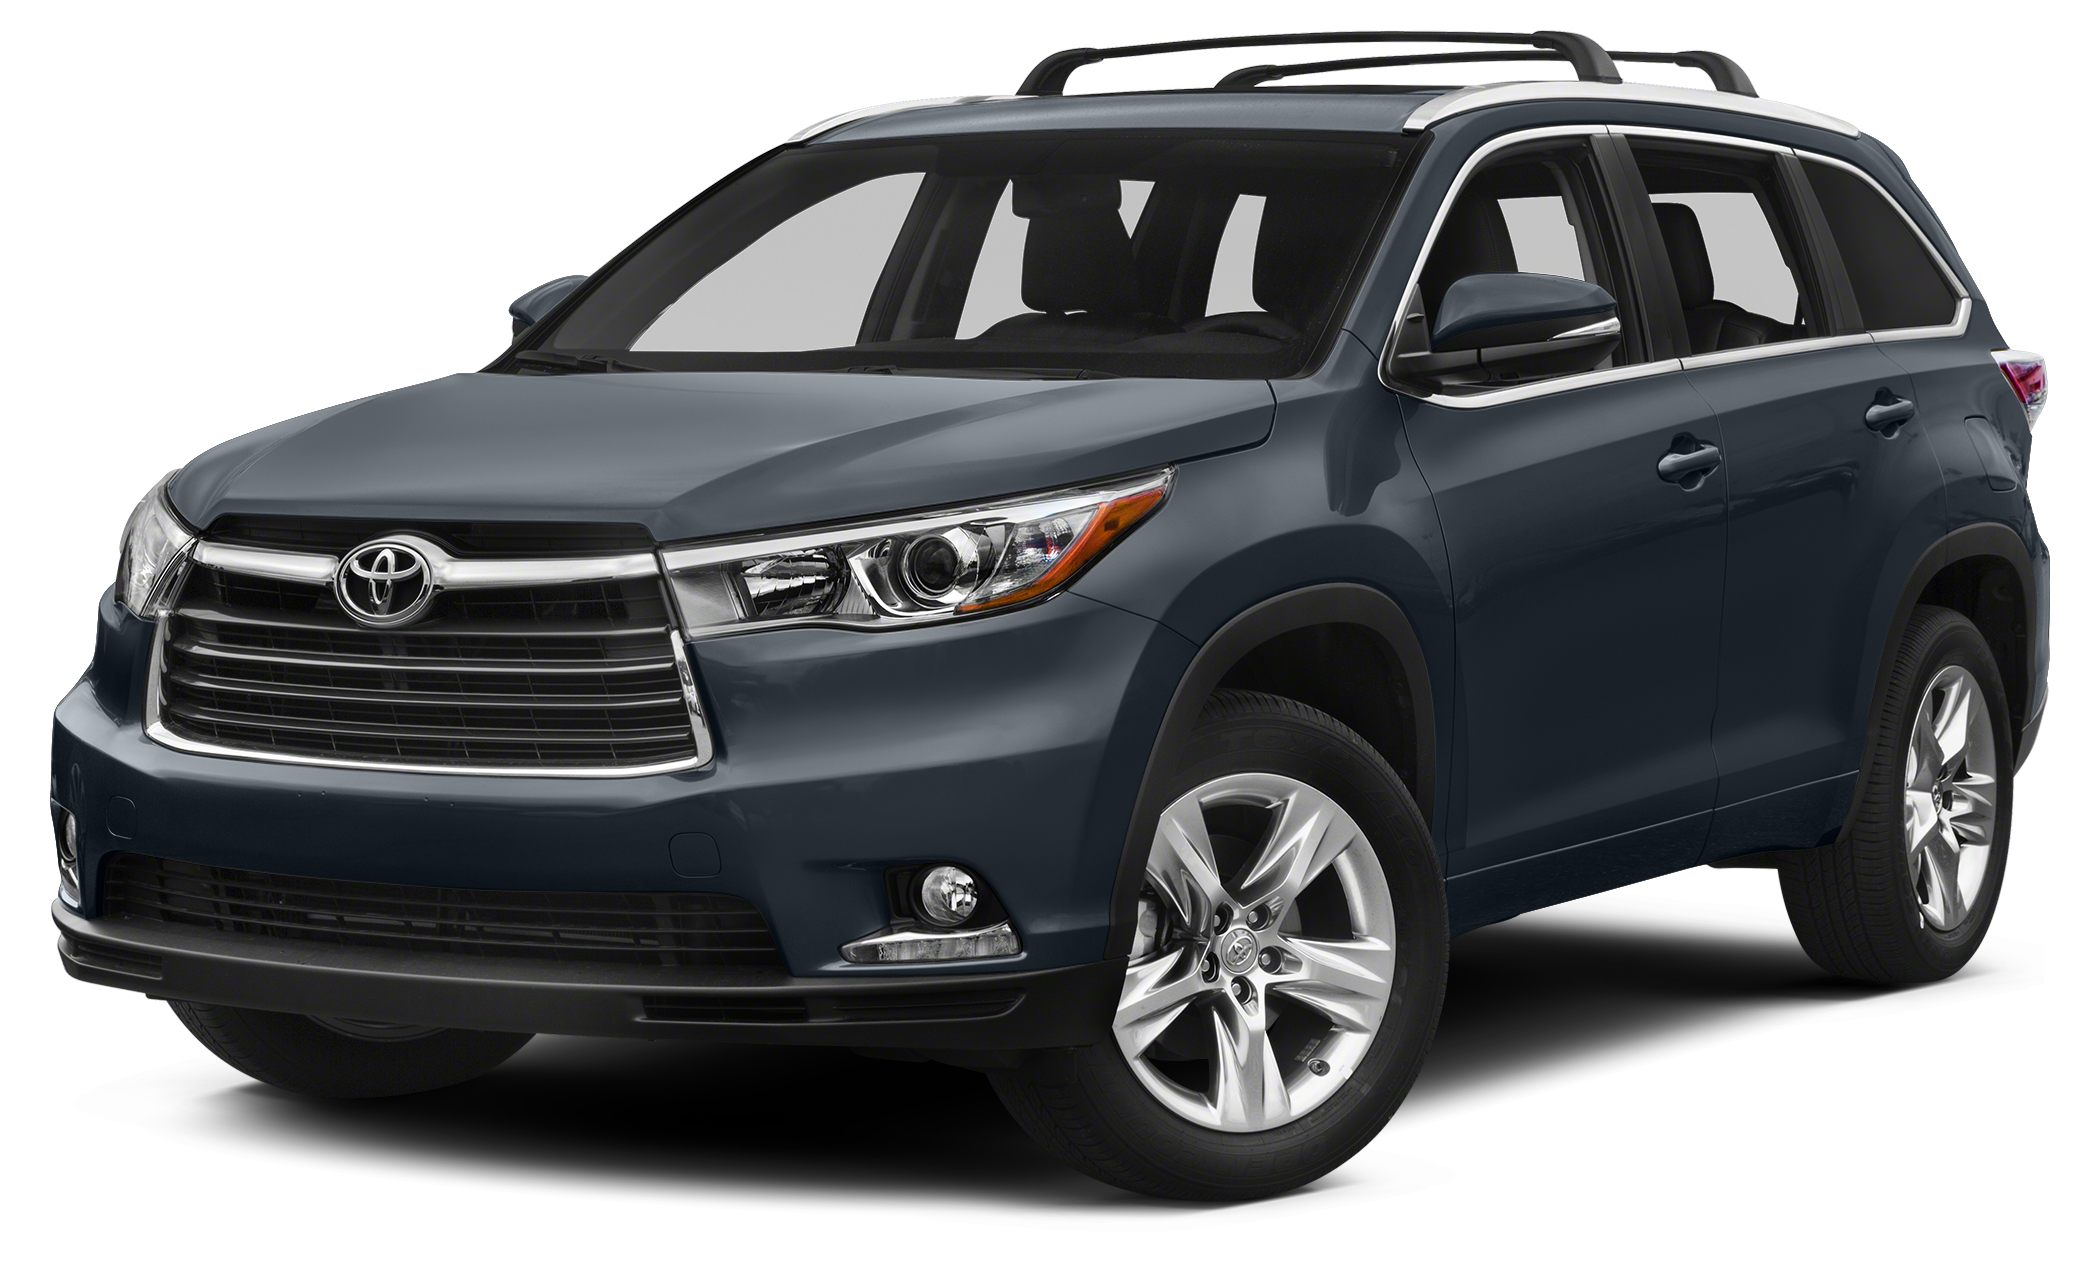 2014 Toyota Highlander XLE CARFAX 1-Owner ONLY 31571 Miles FUEL EFFICIENT 24 MPG Hwy18 MPG Cit